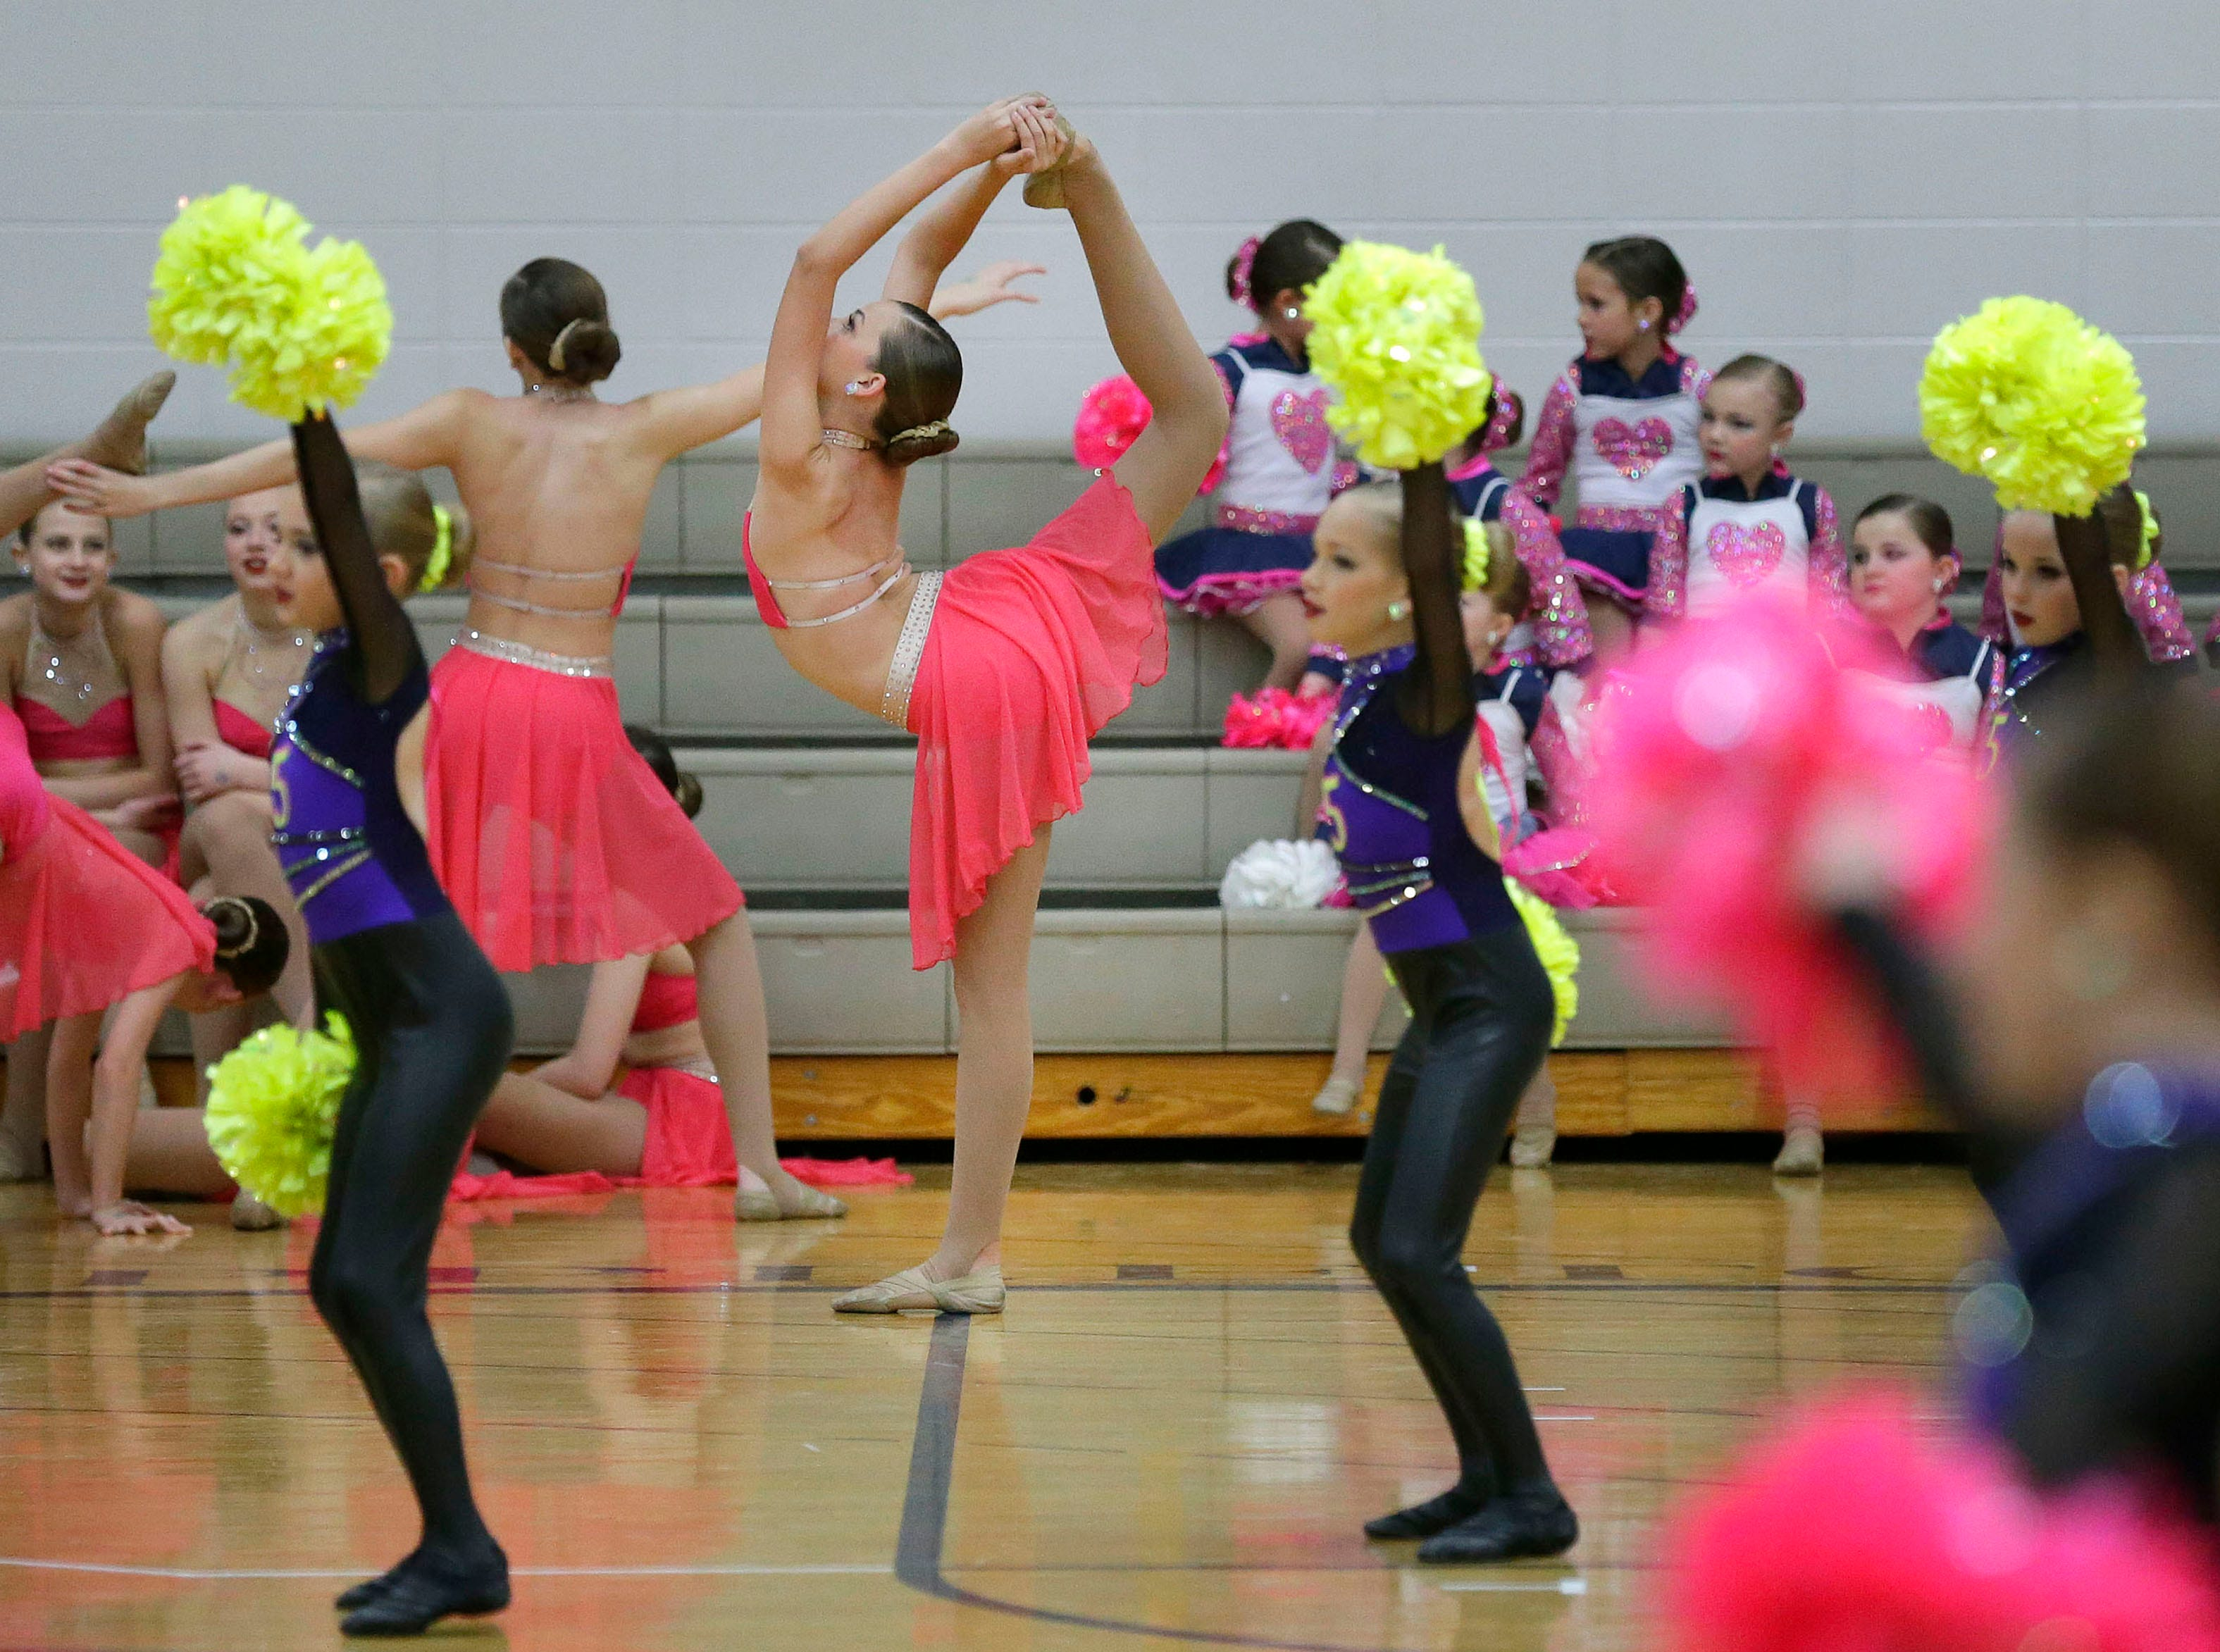 Chloe Dulski with the Energizers Dance Team gets ready while the Energizers Mini Pom Team practices their routine in the foreground as the Lightning Bolt Explosion Cheer and Dance competition takes place Saturday, January 5, 2019, at Appleton North High School in Appleton, Wis.Ron Page/USA TODAY NETWORK-Wisconsin